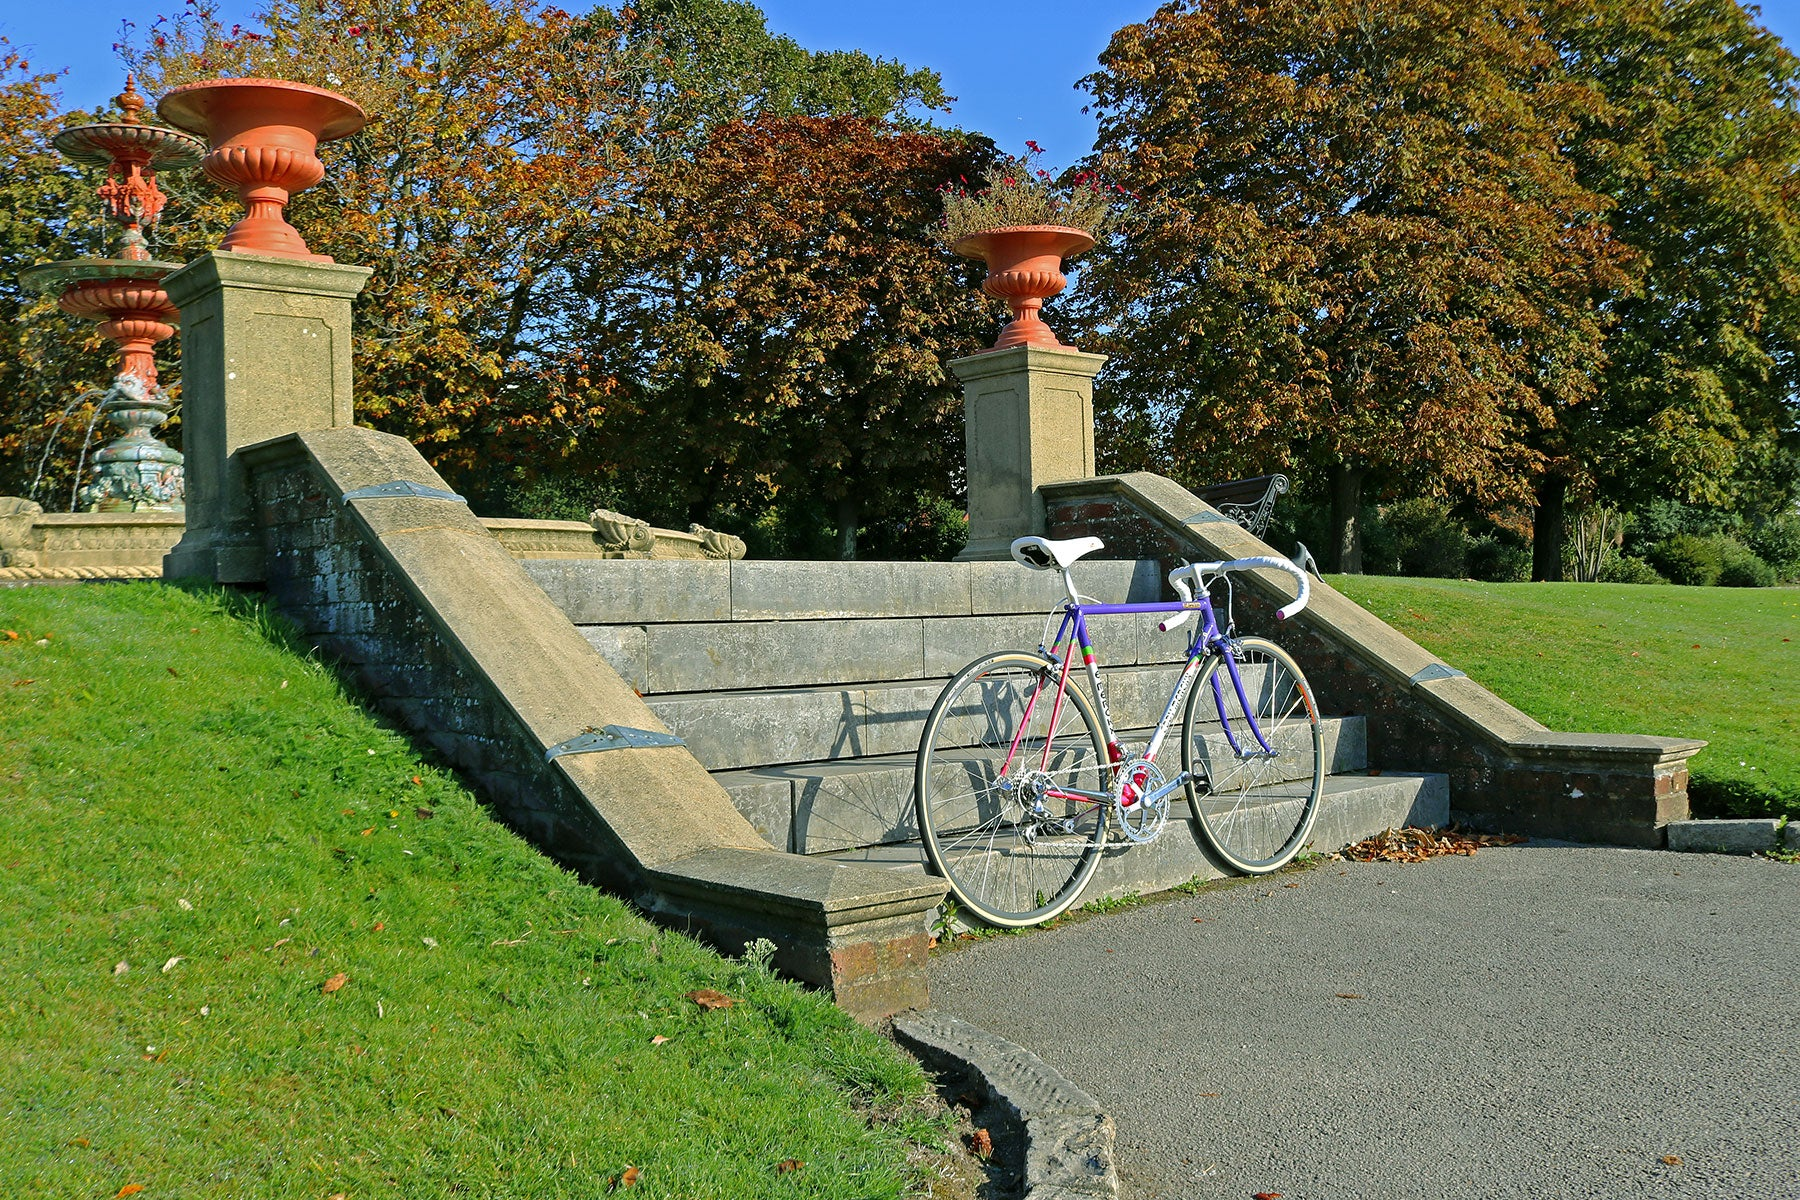 Eddy Merckx Corsa Extra SLX frame on the steps to Poole Park's fountain